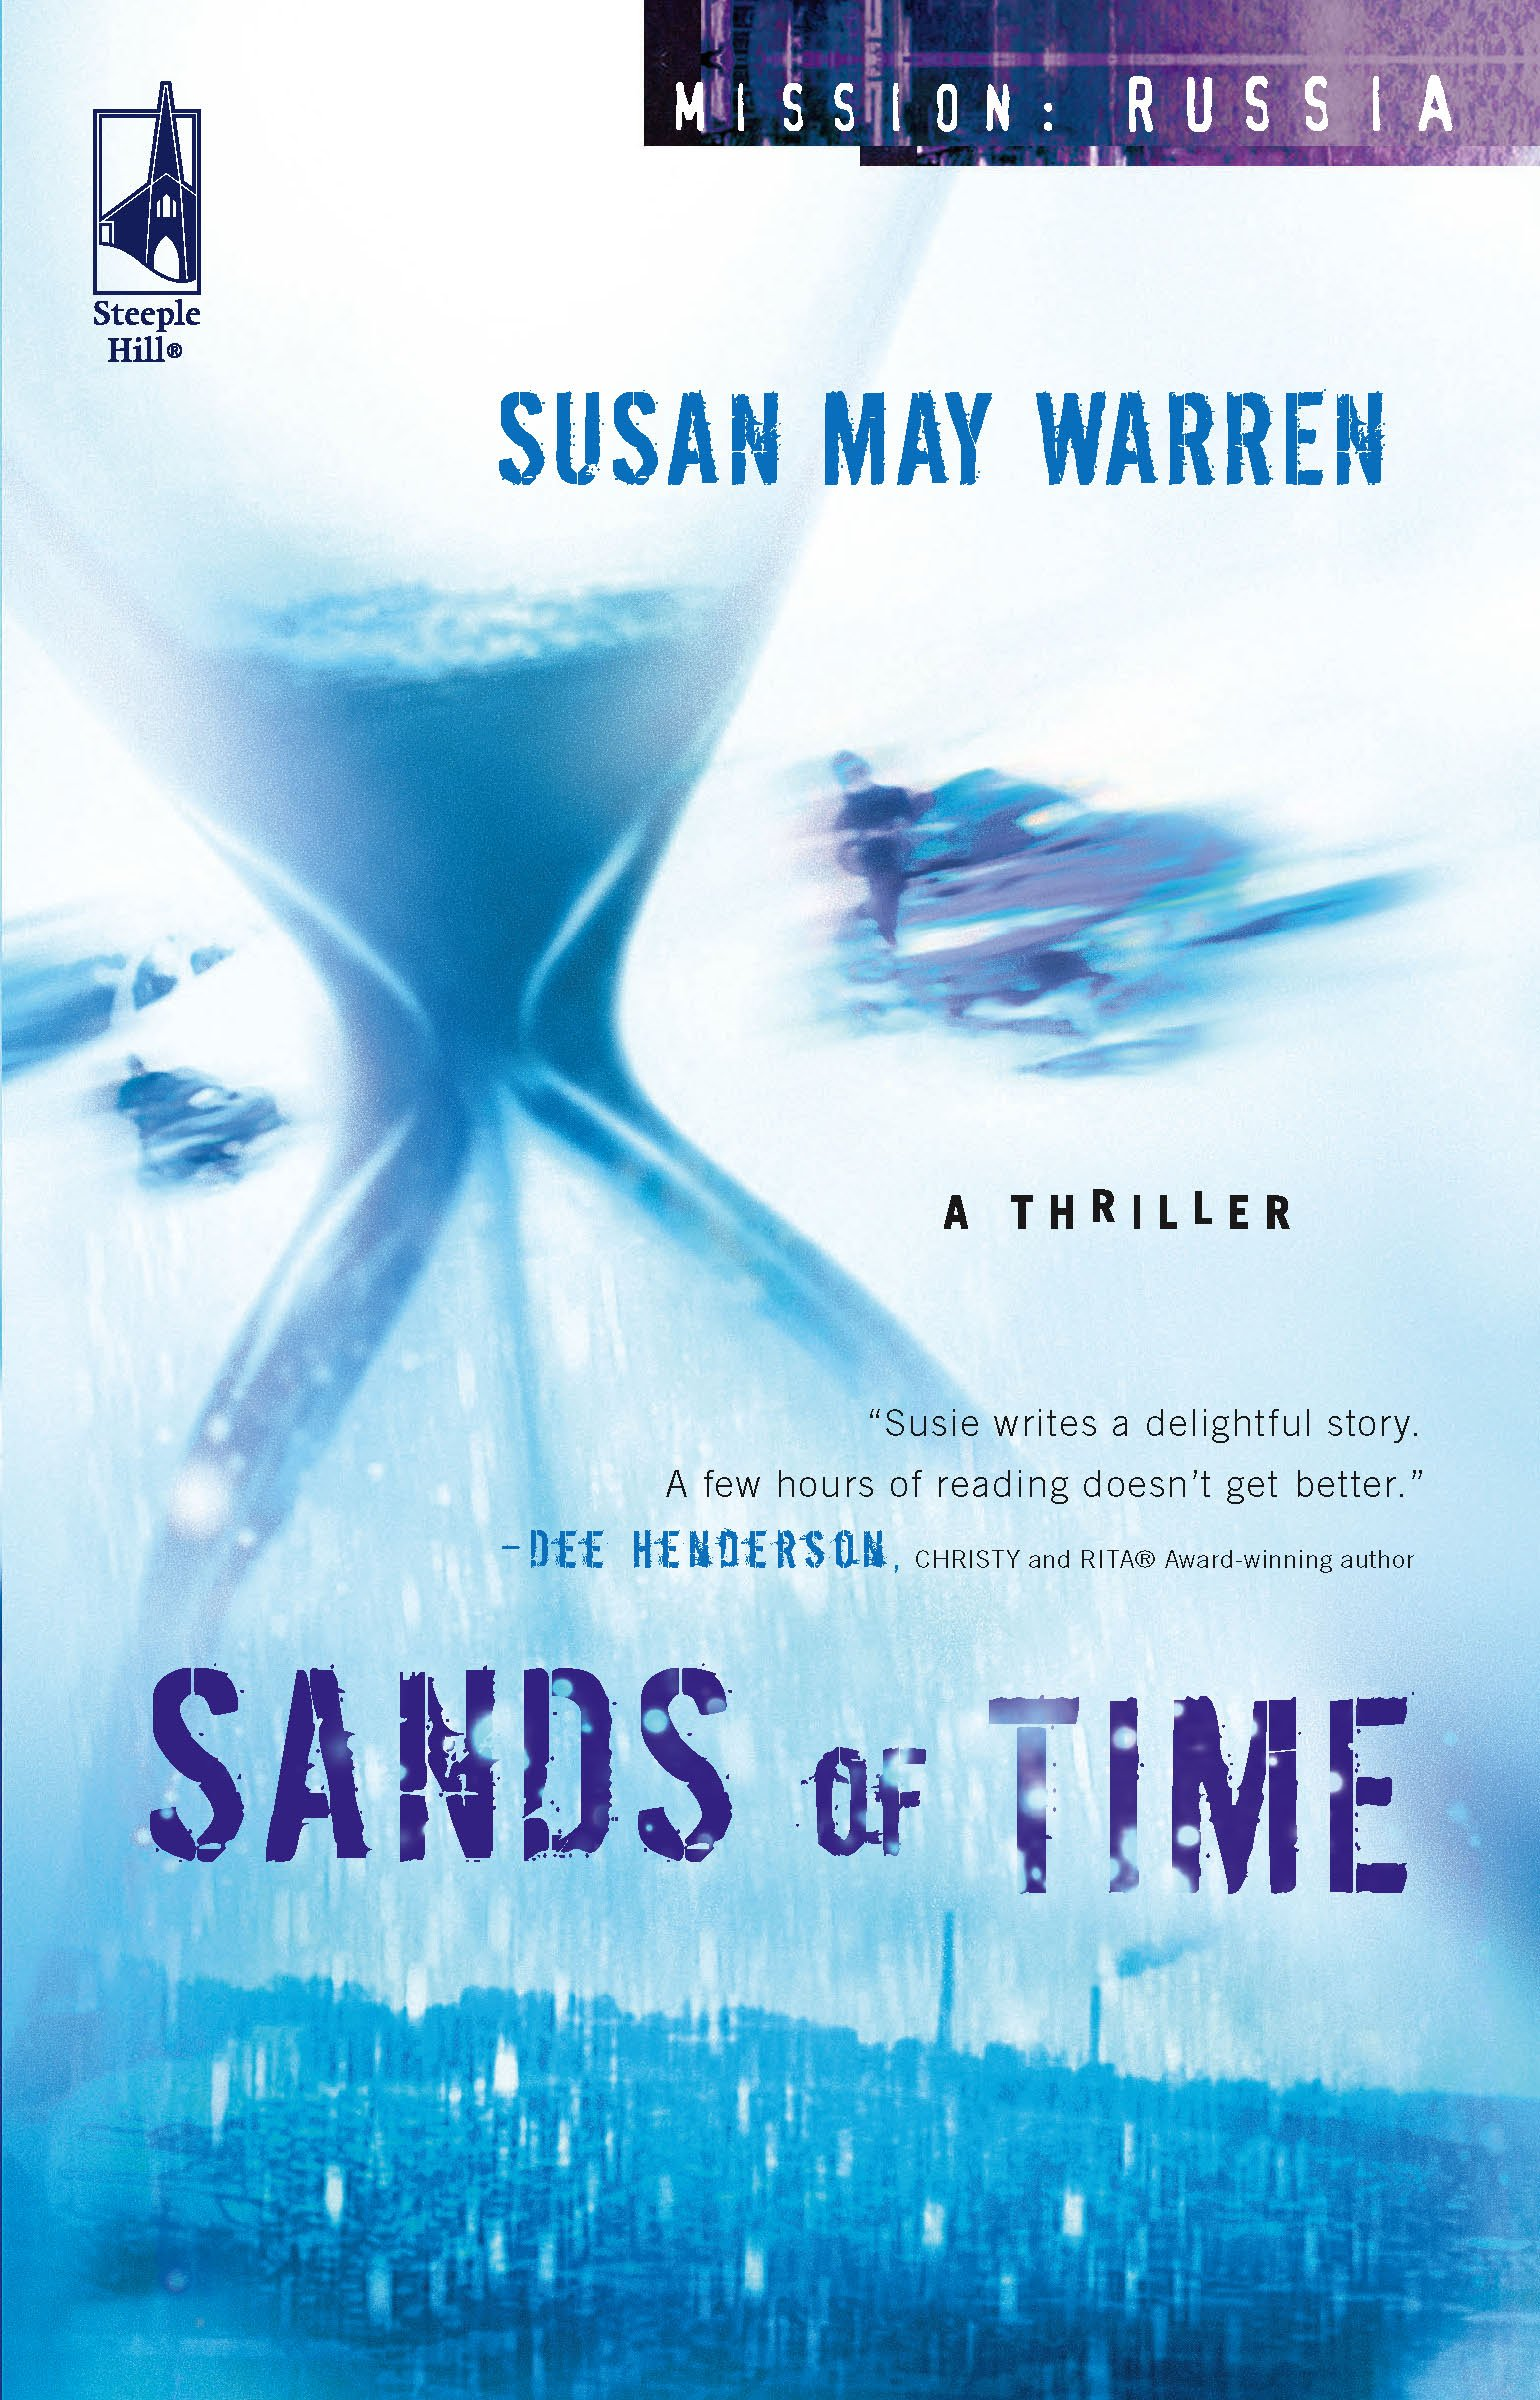 Download Sands of Time (Mission: Russia #2) (Steeple Hill Women's Fiction #41) ebook